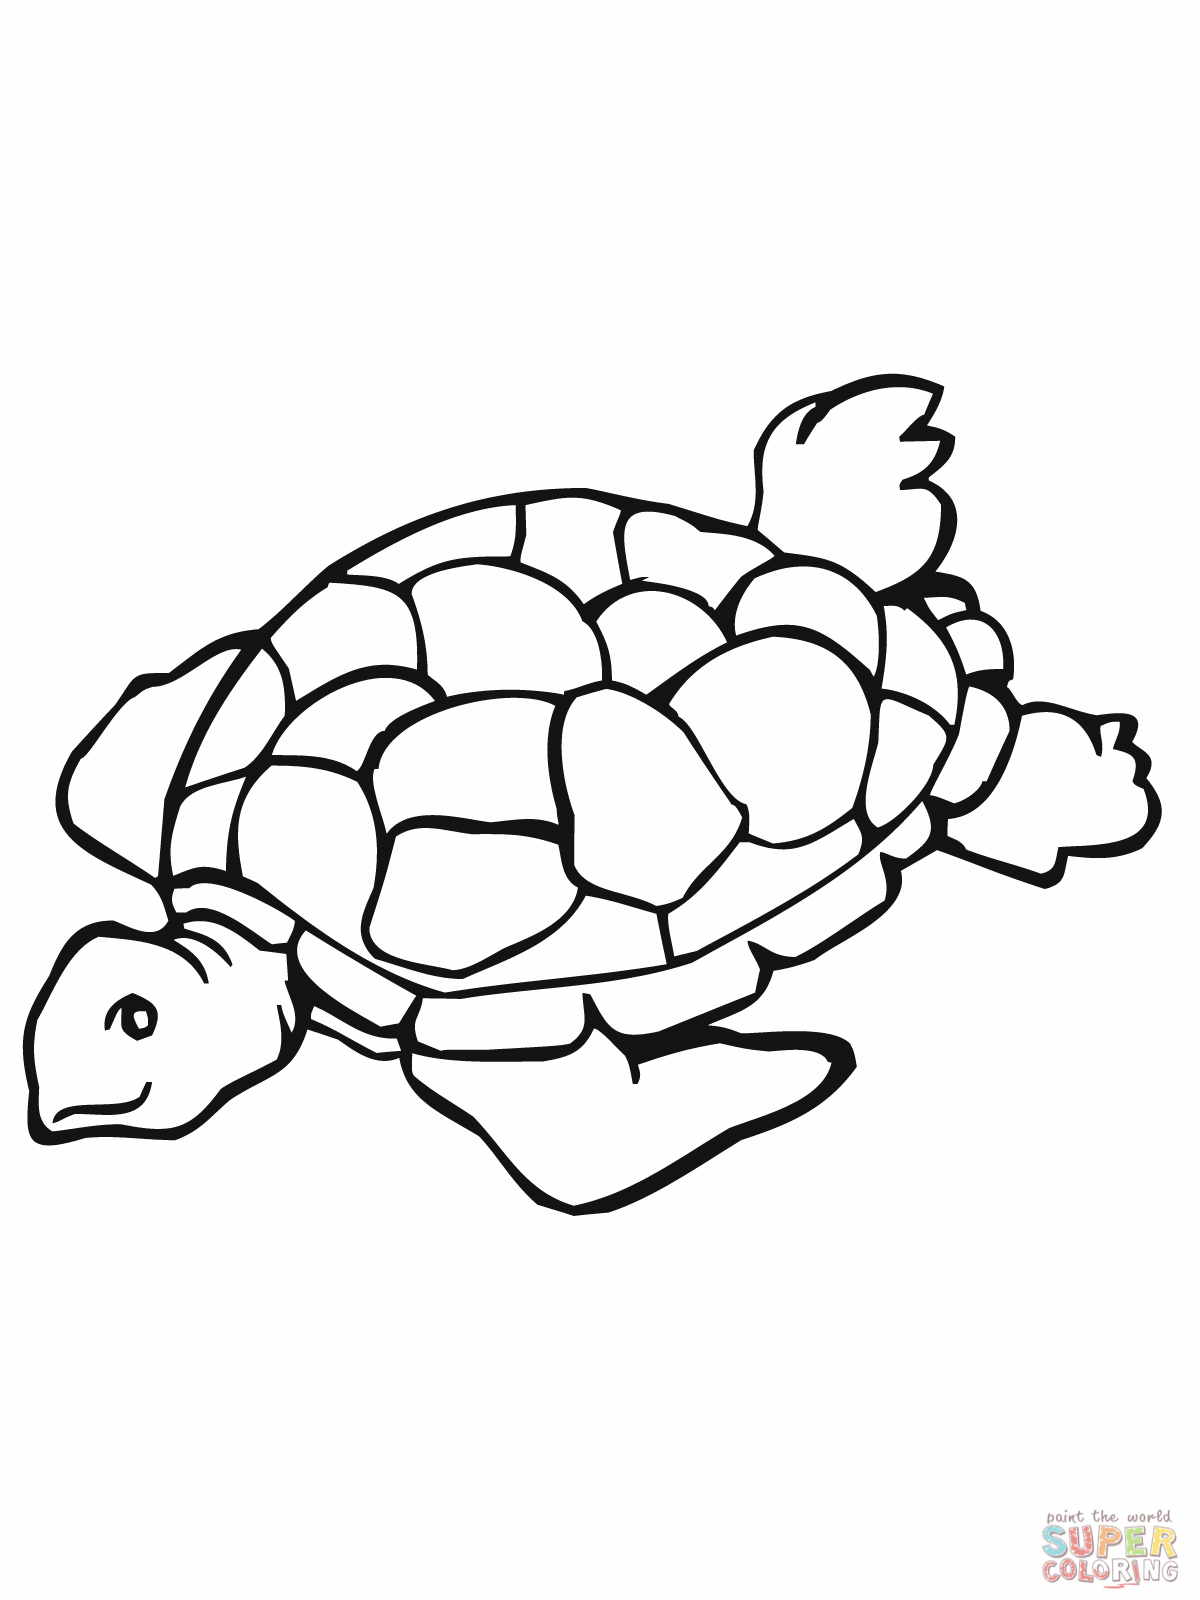 Sea Turtle Clip Art Black And White.